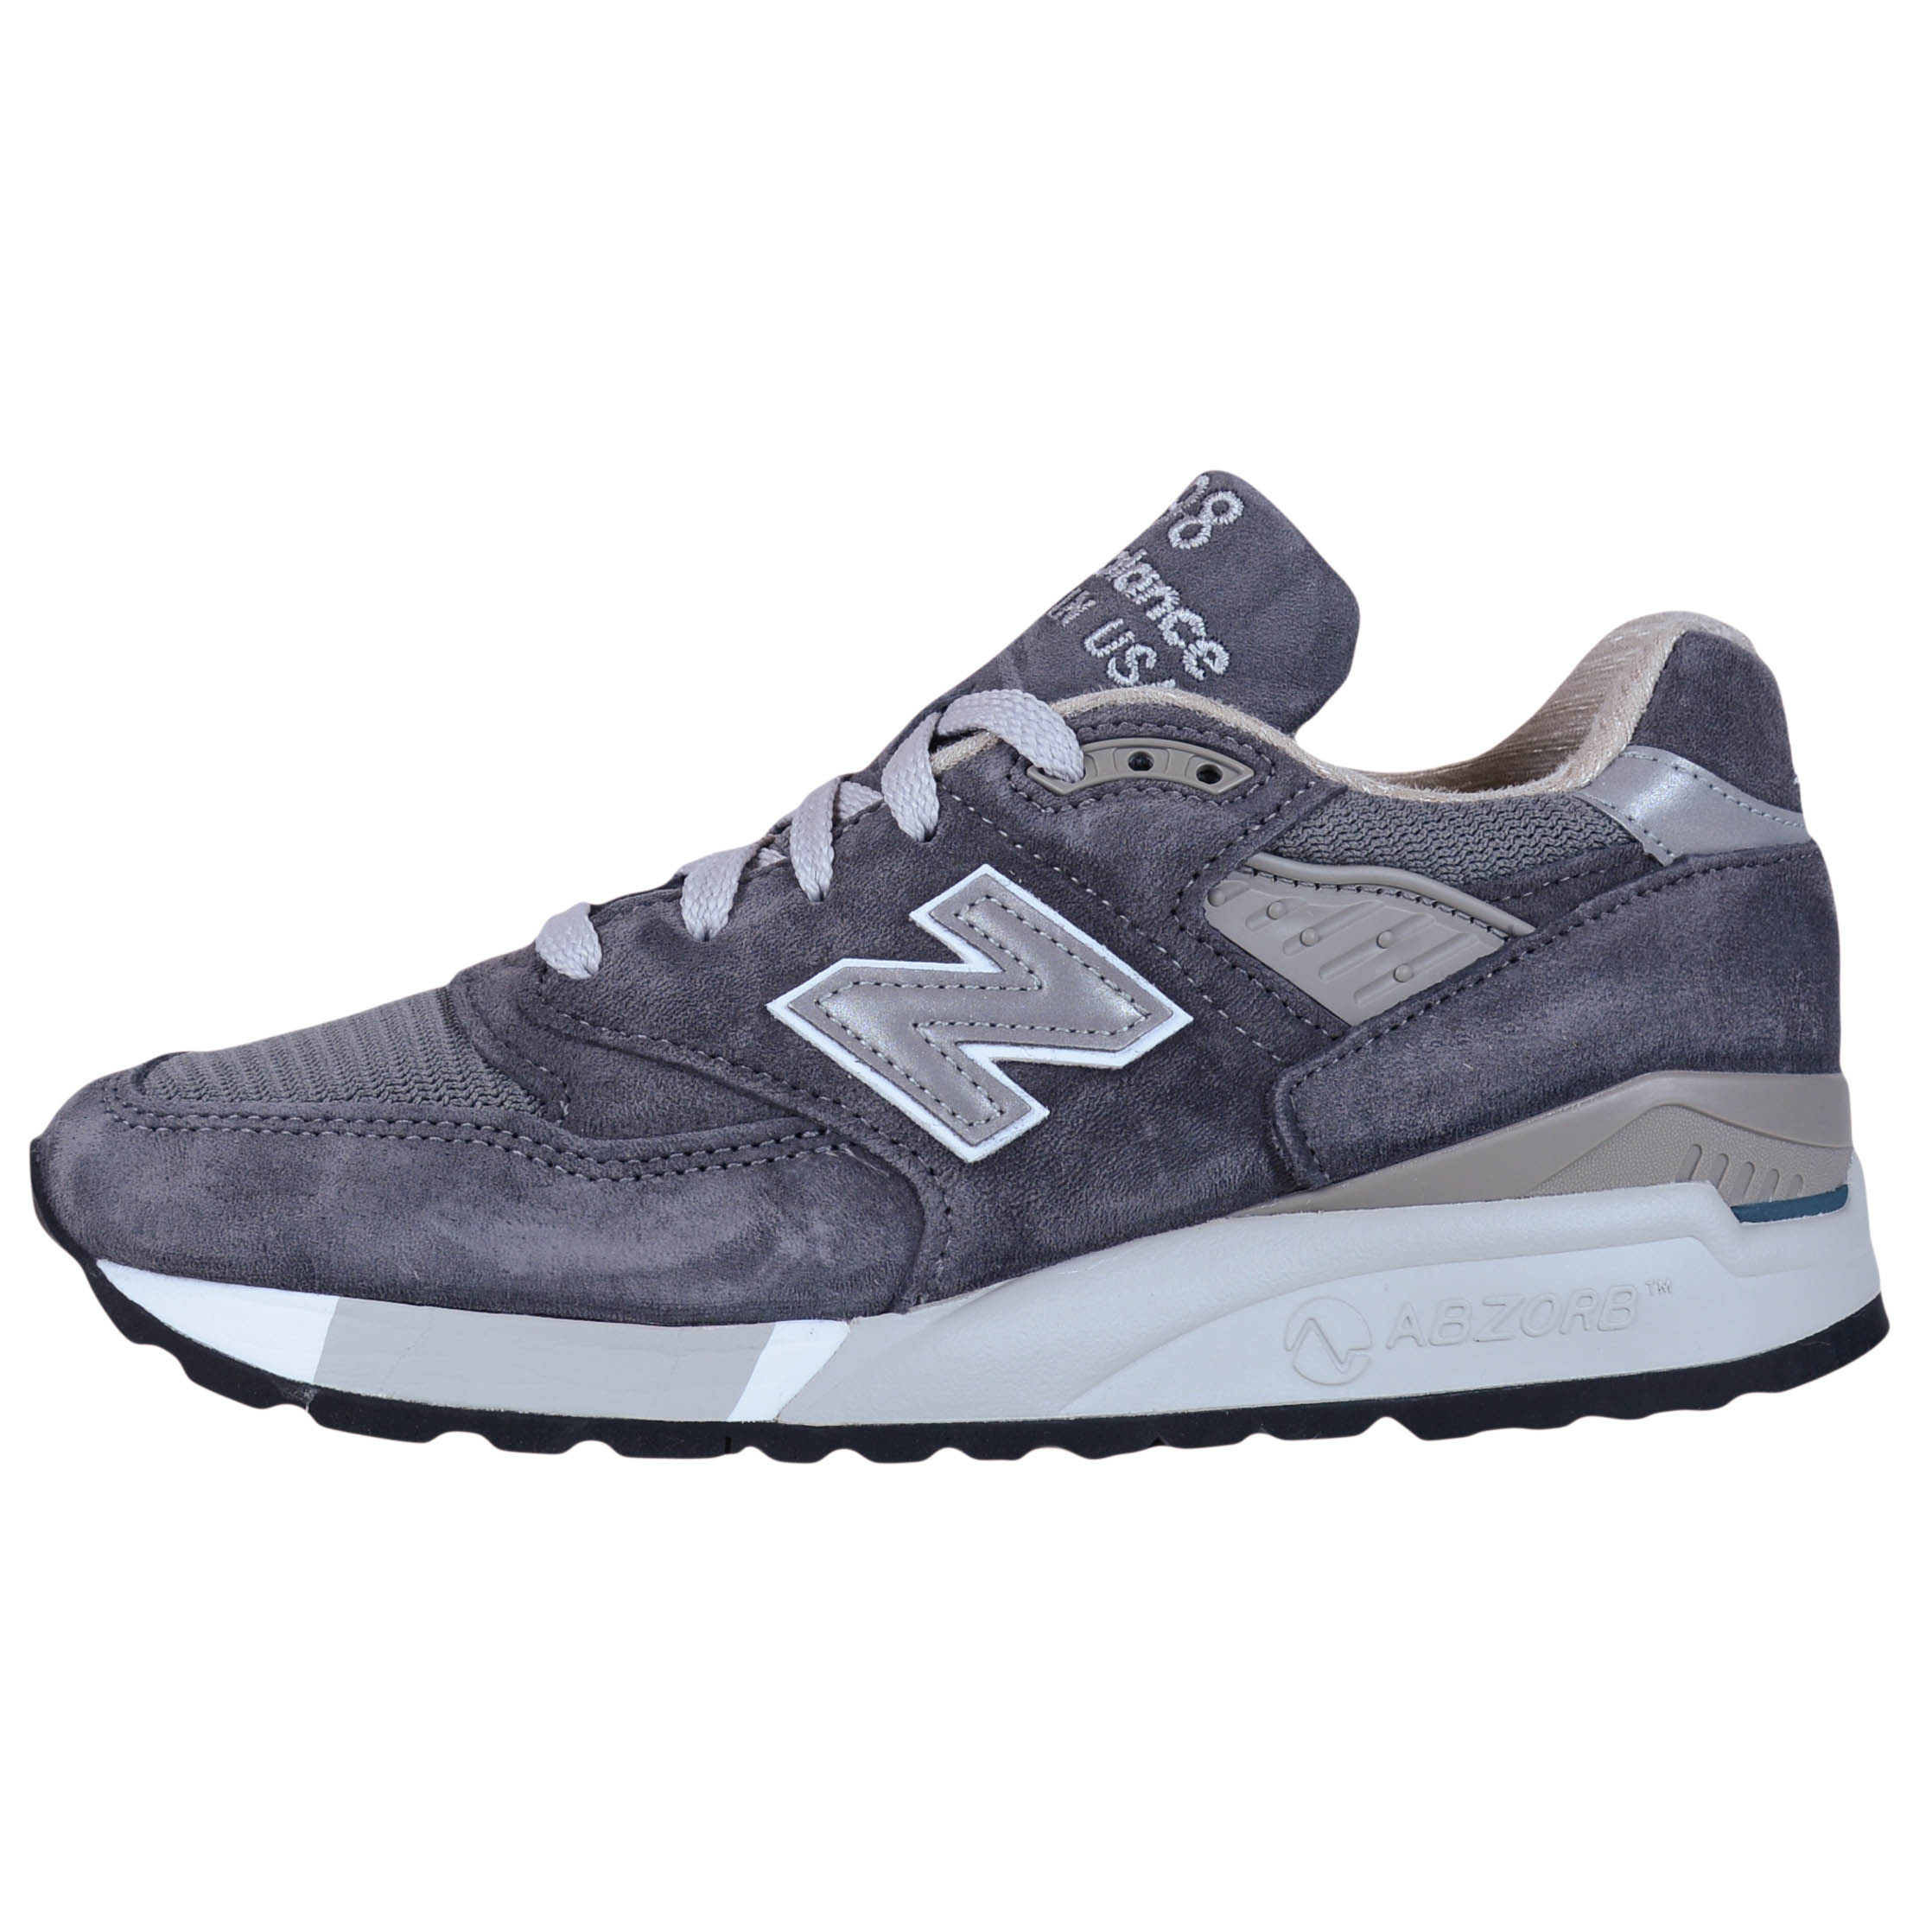 huge selection of b3848 d1602 New Balance - NEW BALANCE WOMEN S 998 RETRO RUNNING SHOES CHARCOAL GREY  W998CH MADE IN USA - Walmart.com